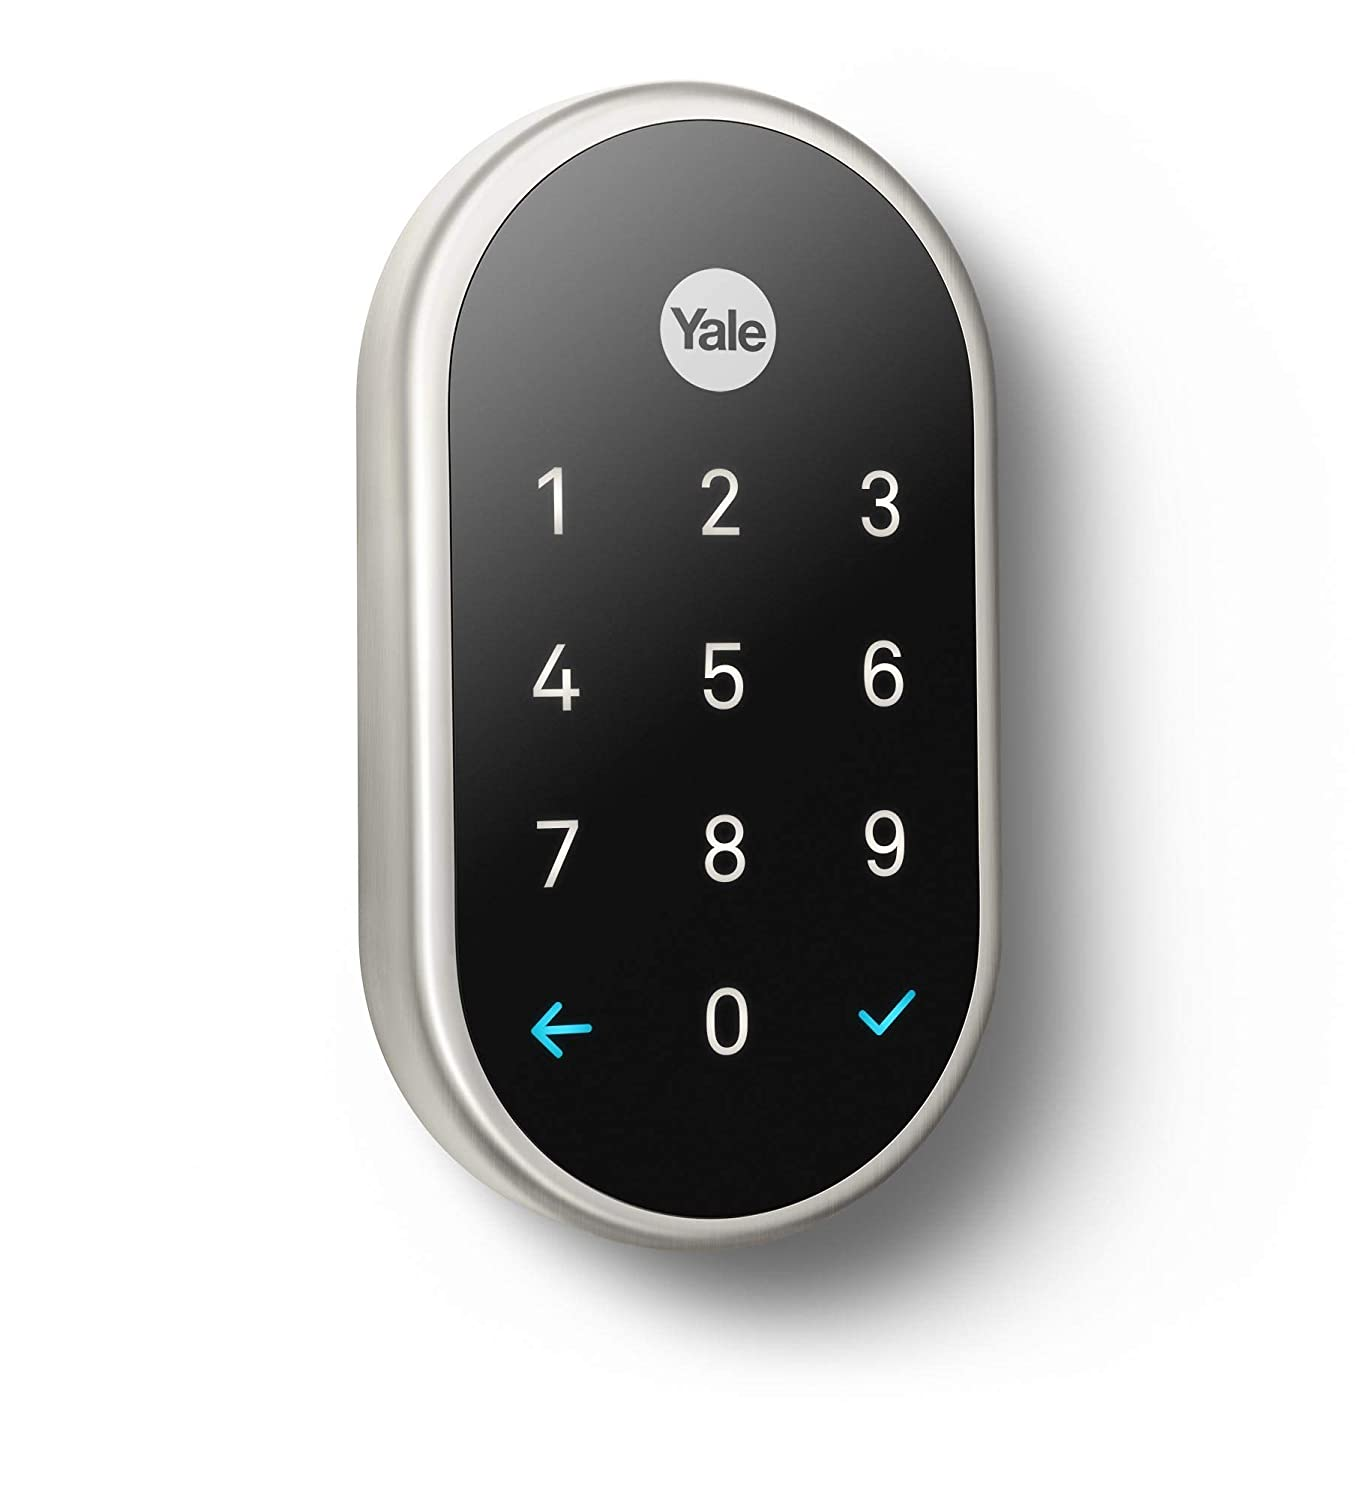 Google, RB-YRD540-WV-619, Nest x Yale Lock with Nest Connect, Smart Lock, Satin Nickel